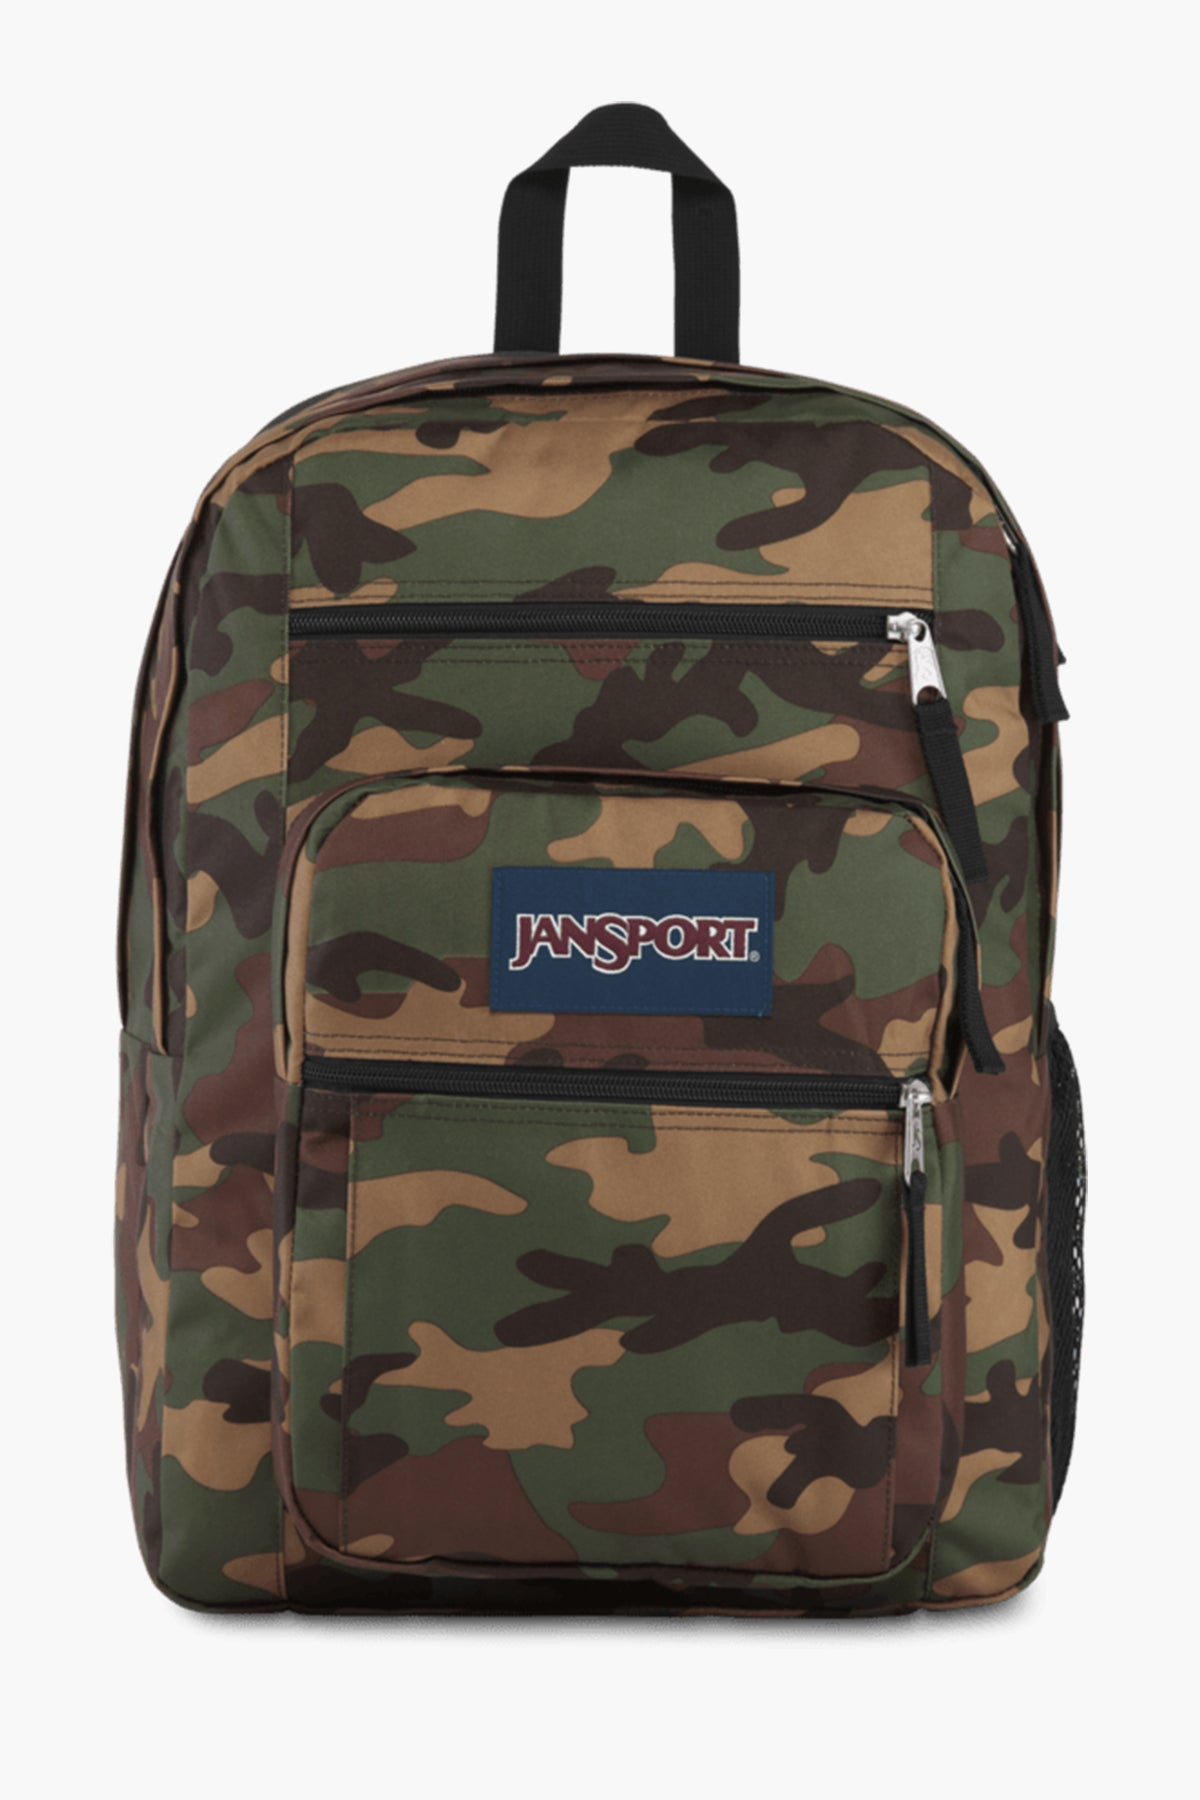 JanSport Big Student Kids Backpack - Camo